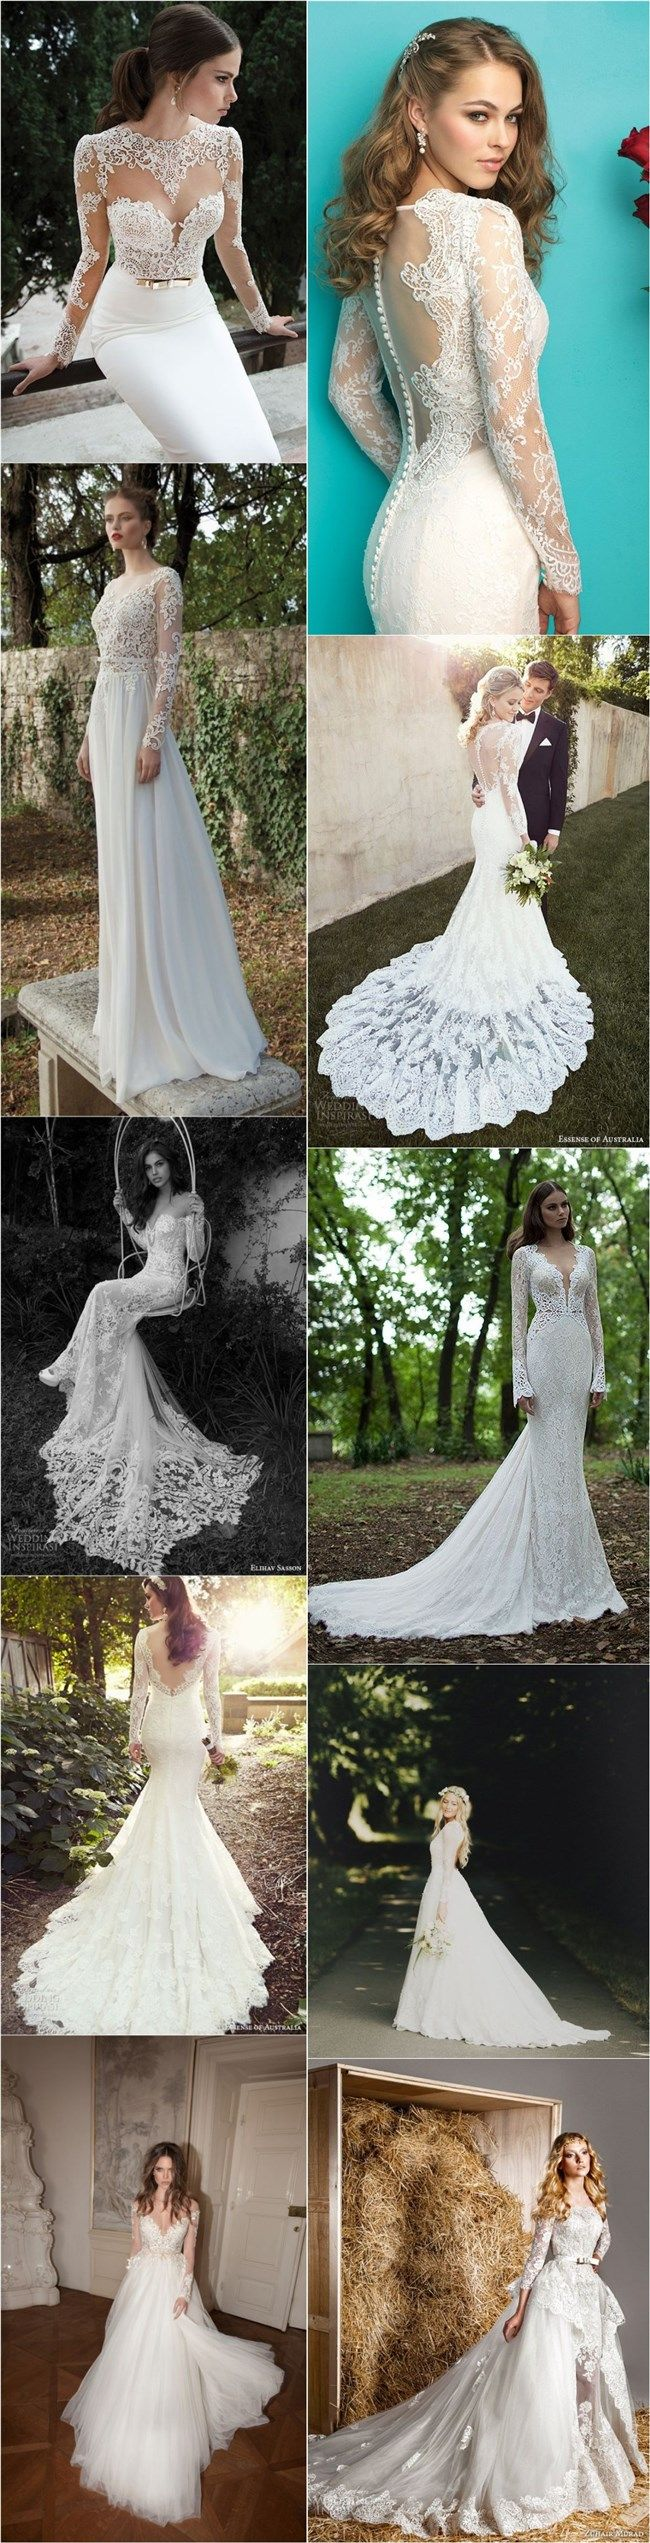 Check out these 30 dresses for an unexpected wow factor. - See more at: http://www.deerpearlflowers.com/long-sleeve-wedding-dresses/#sthash.3Q0ZEVVq.dpuf